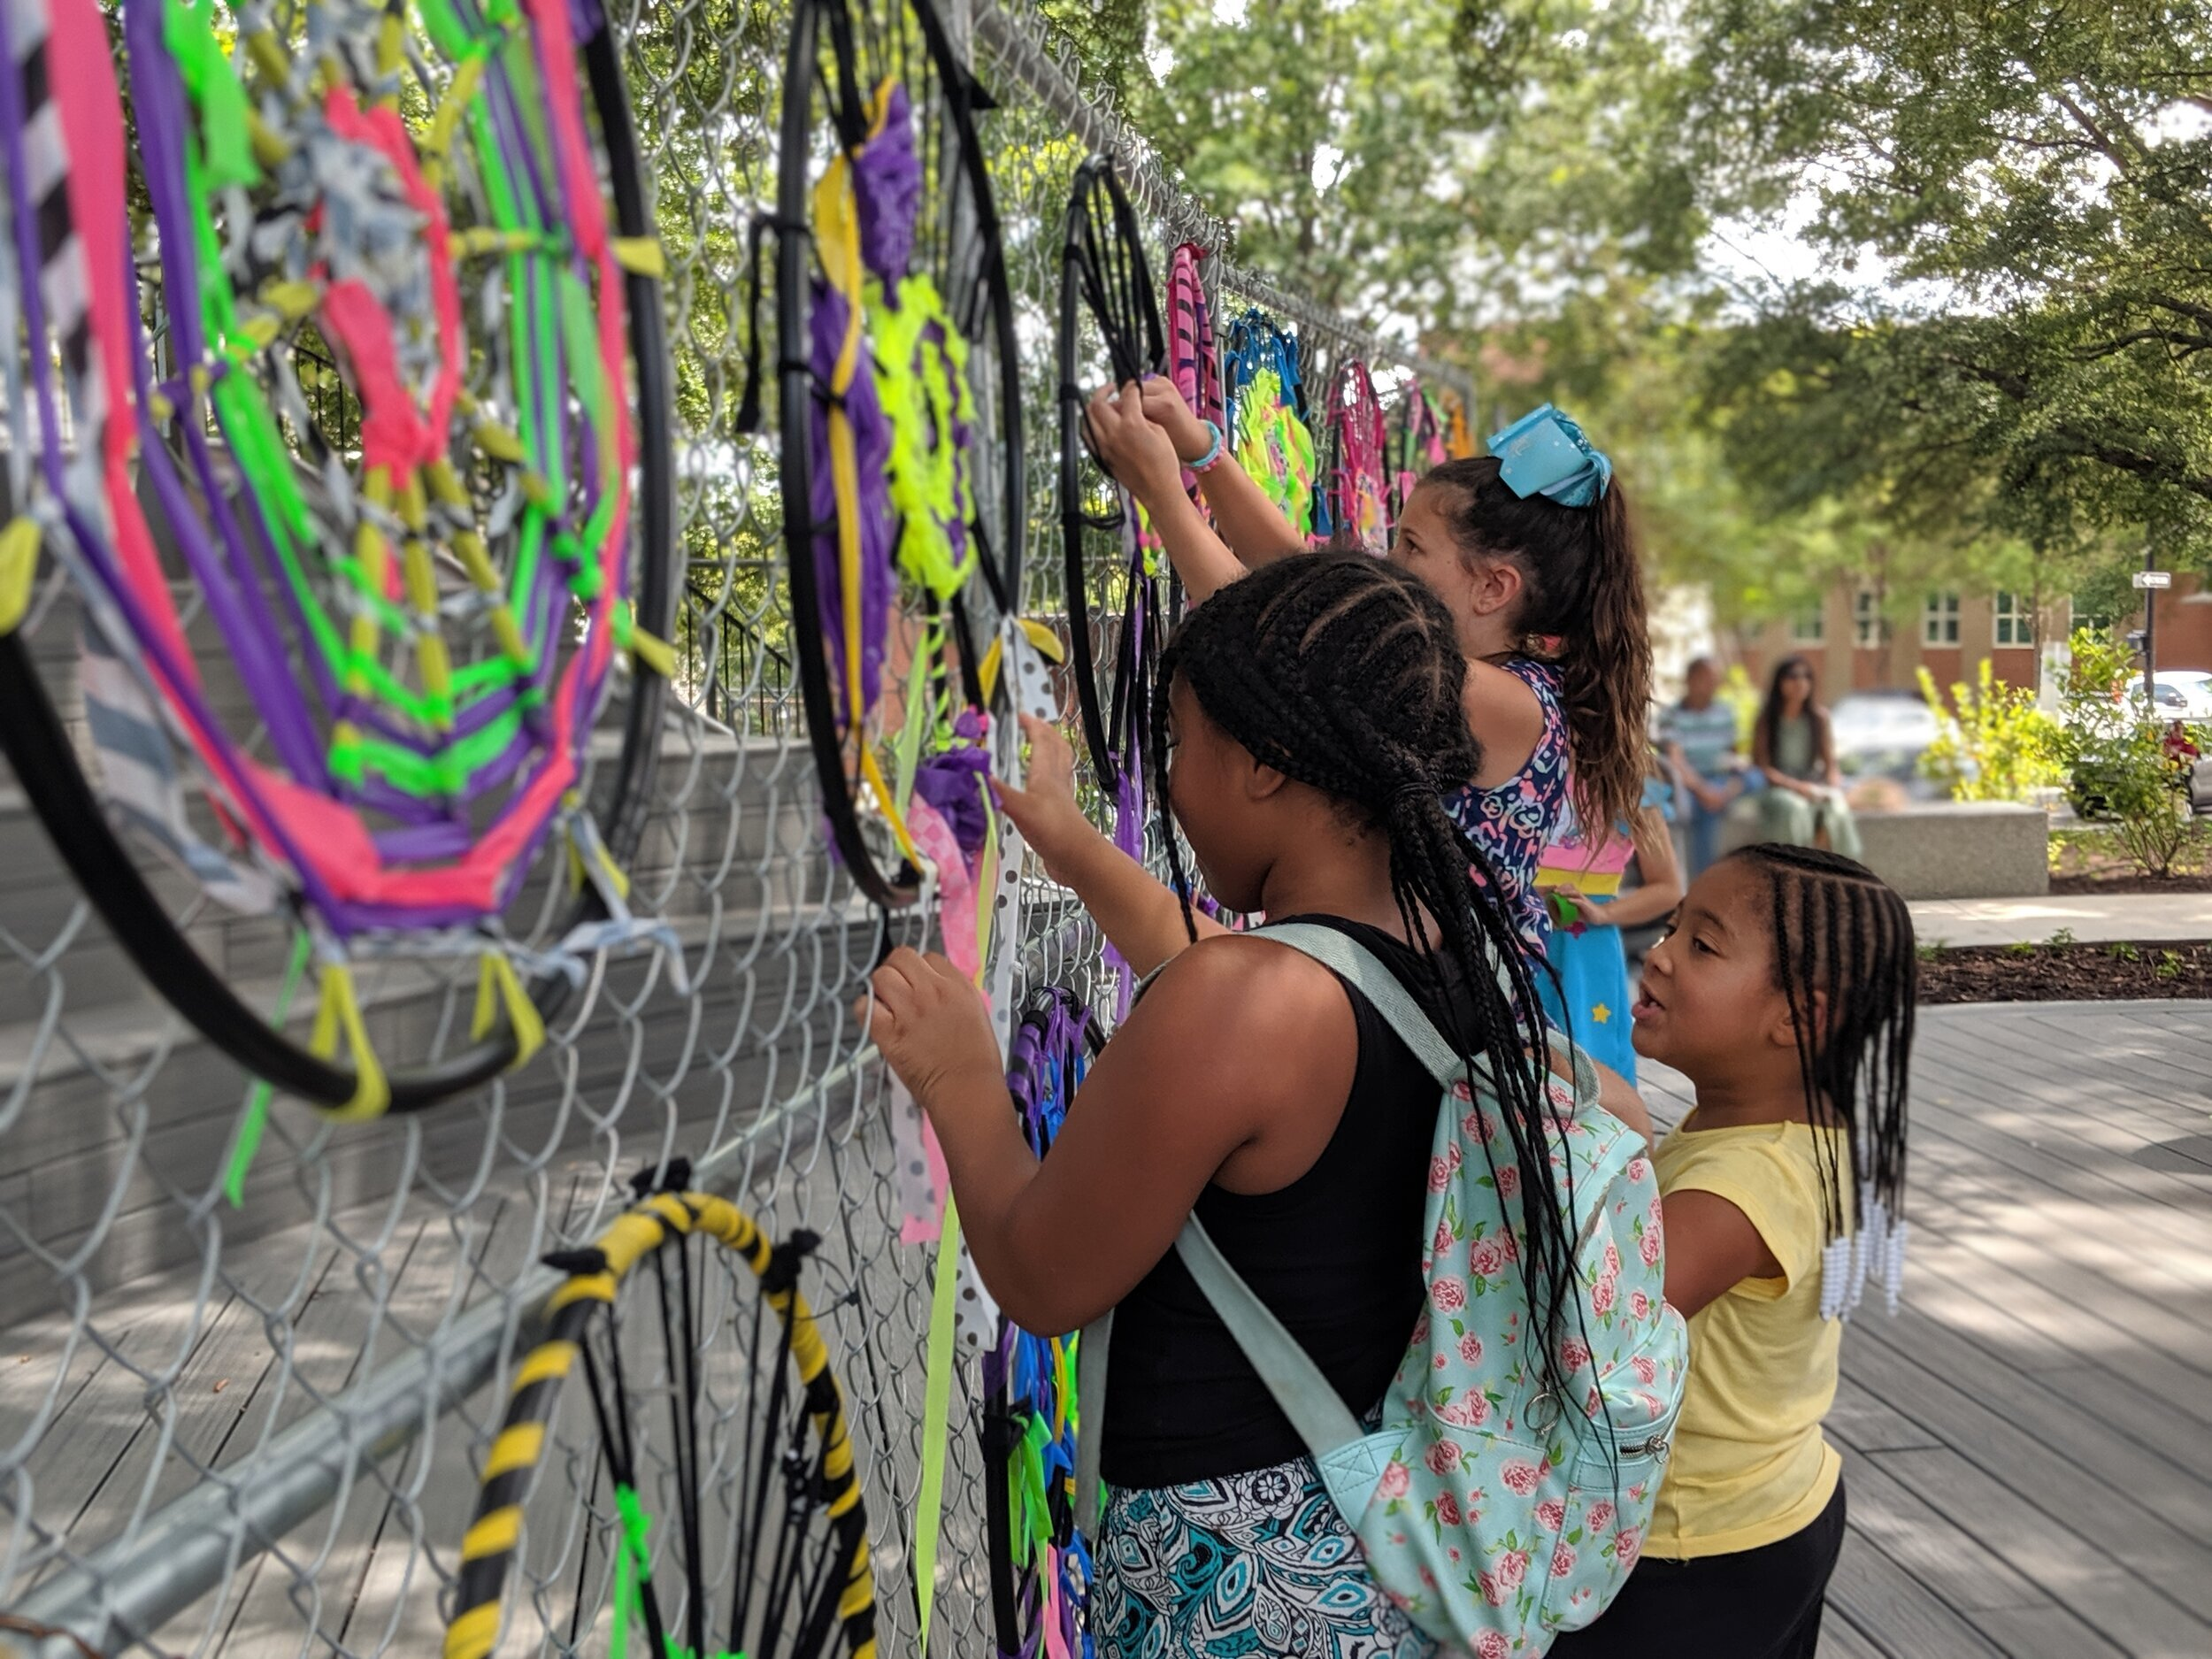 Community Art Collective - We are a team of artists, educators and creative catalysts committed to using our talents to see Raleigh thrive. We create projects and experiences designed to enhance public spaces, facilitate playful learning and build community.